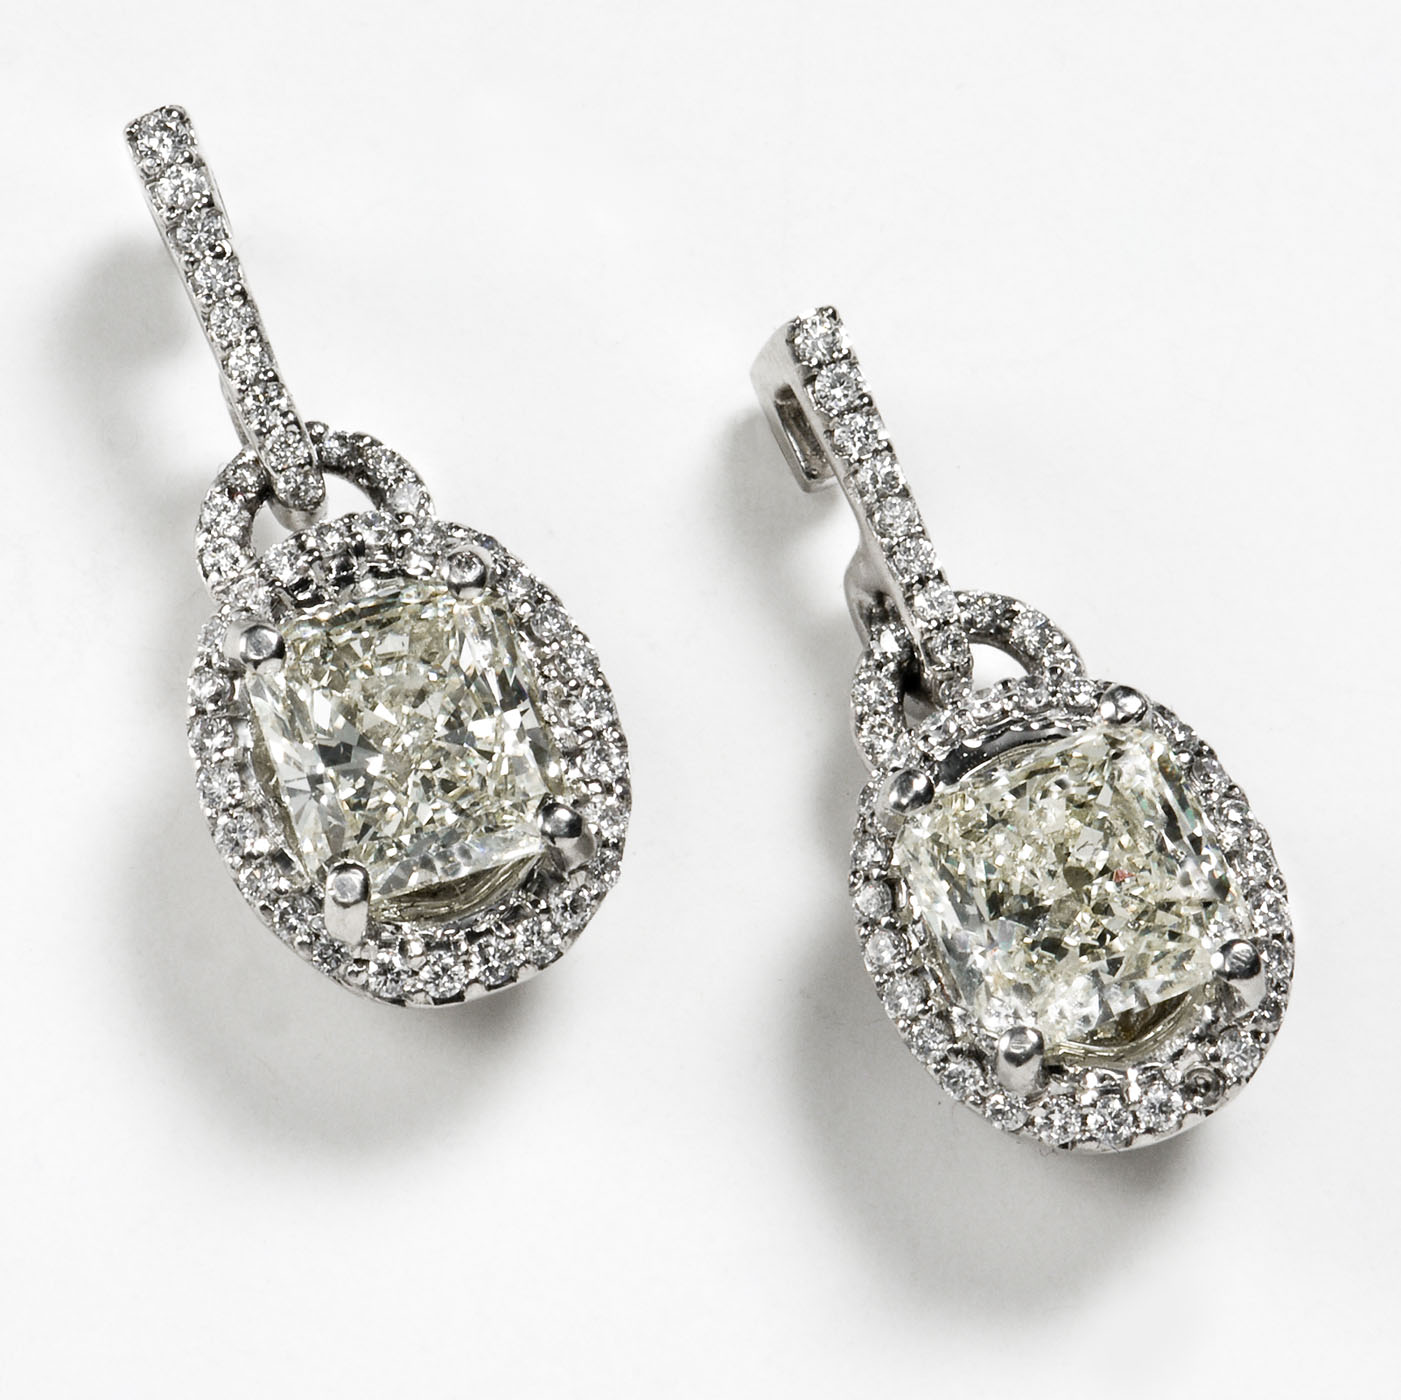 http://2.bp.blogspot.com/-qB84AG1Dv8o/TZu71nA69wI/AAAAAAAAAJQ/QMLyZI5vZcs/s1600/Earrings-Diamond-Radient-lg.jpg